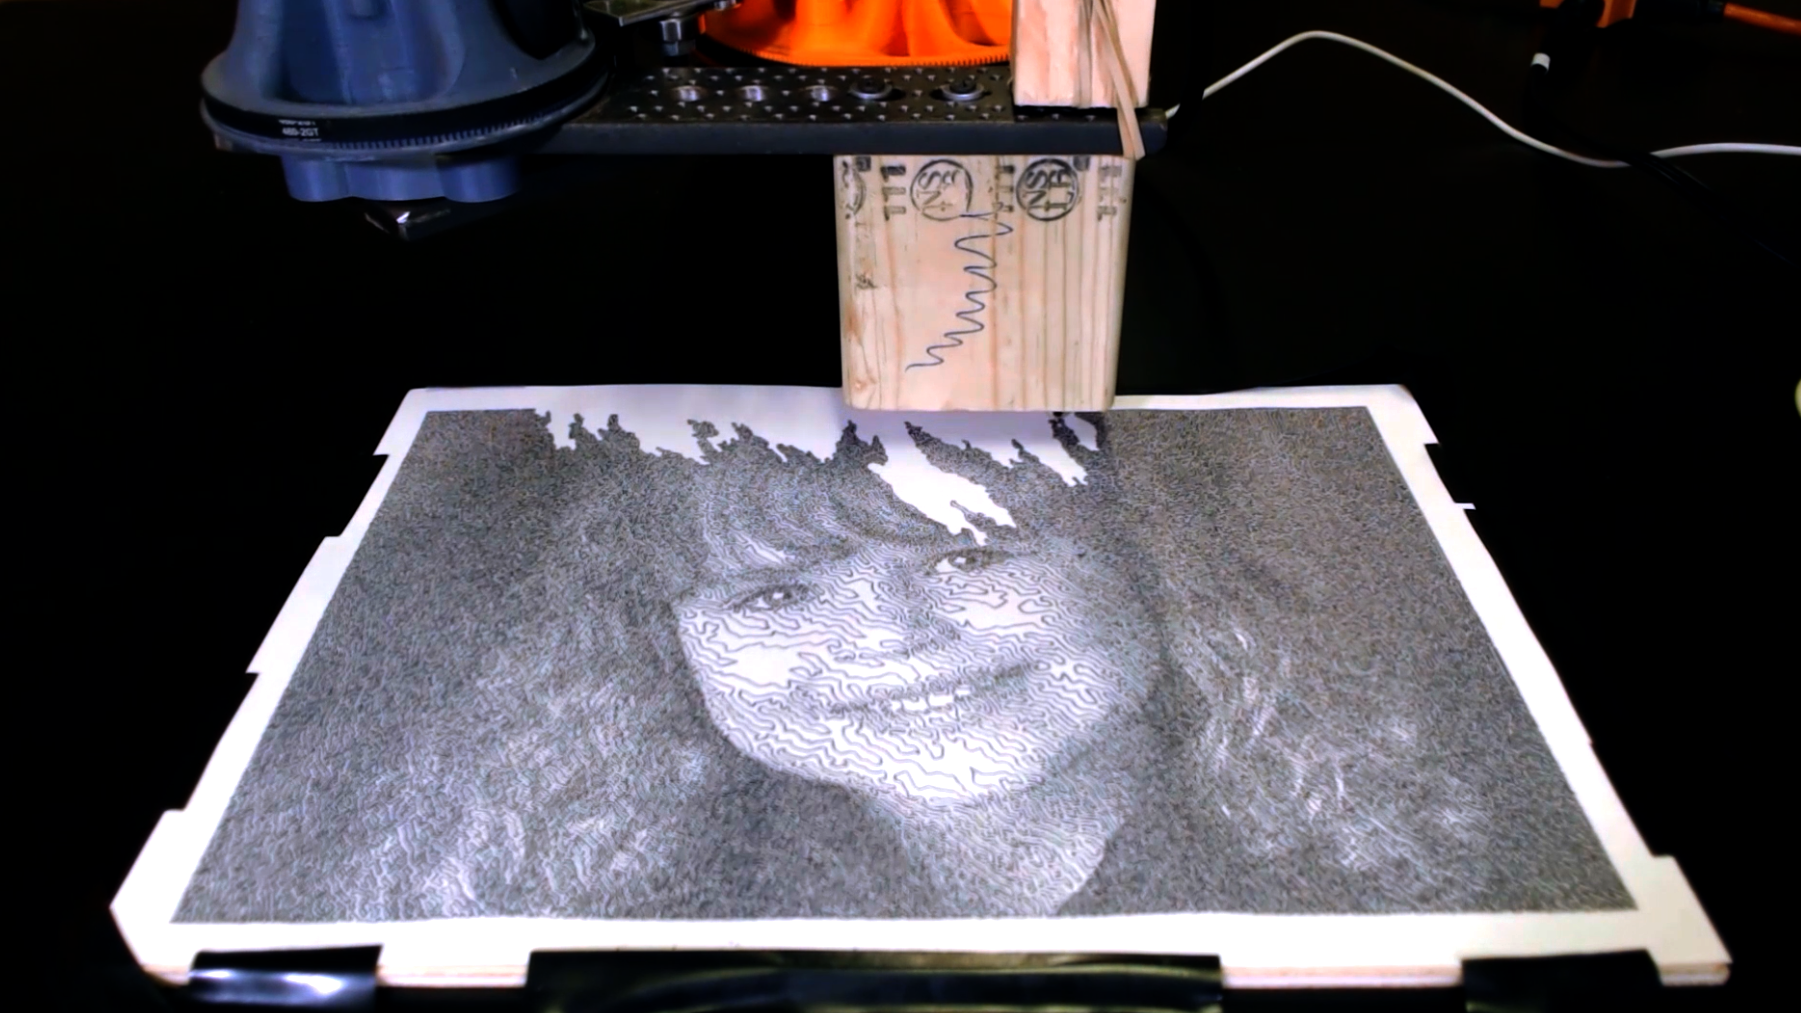 TSP Art drawn by evezor robotic arm